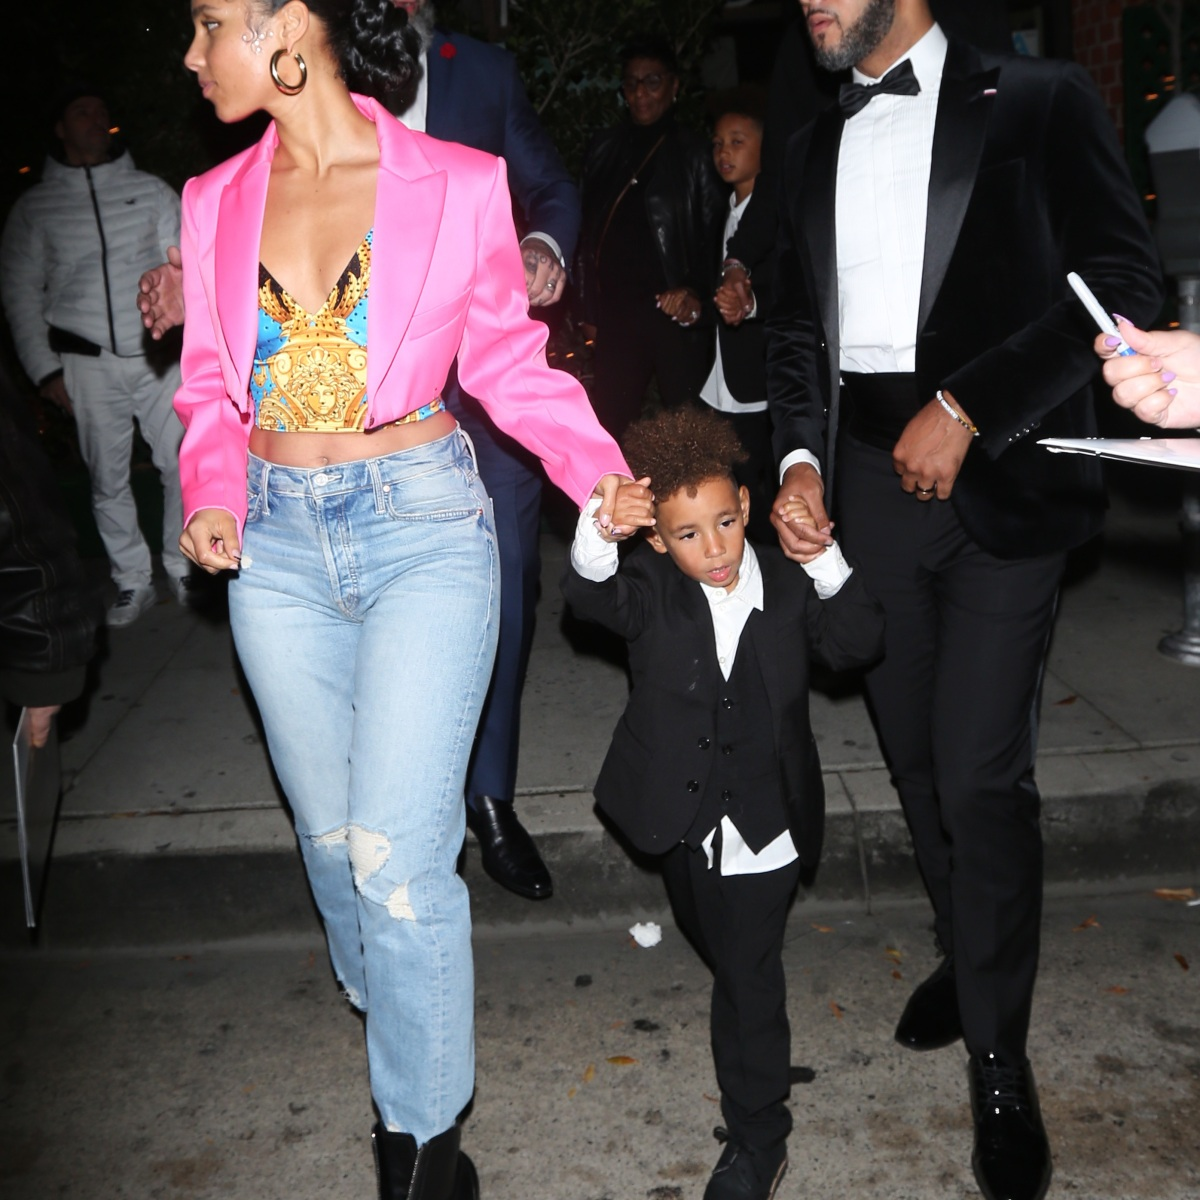 Alicia Keys Rocks Crop Top and Jeans at Dinner With Husband Swizz Beatz and Son Genesis Post-Grammys